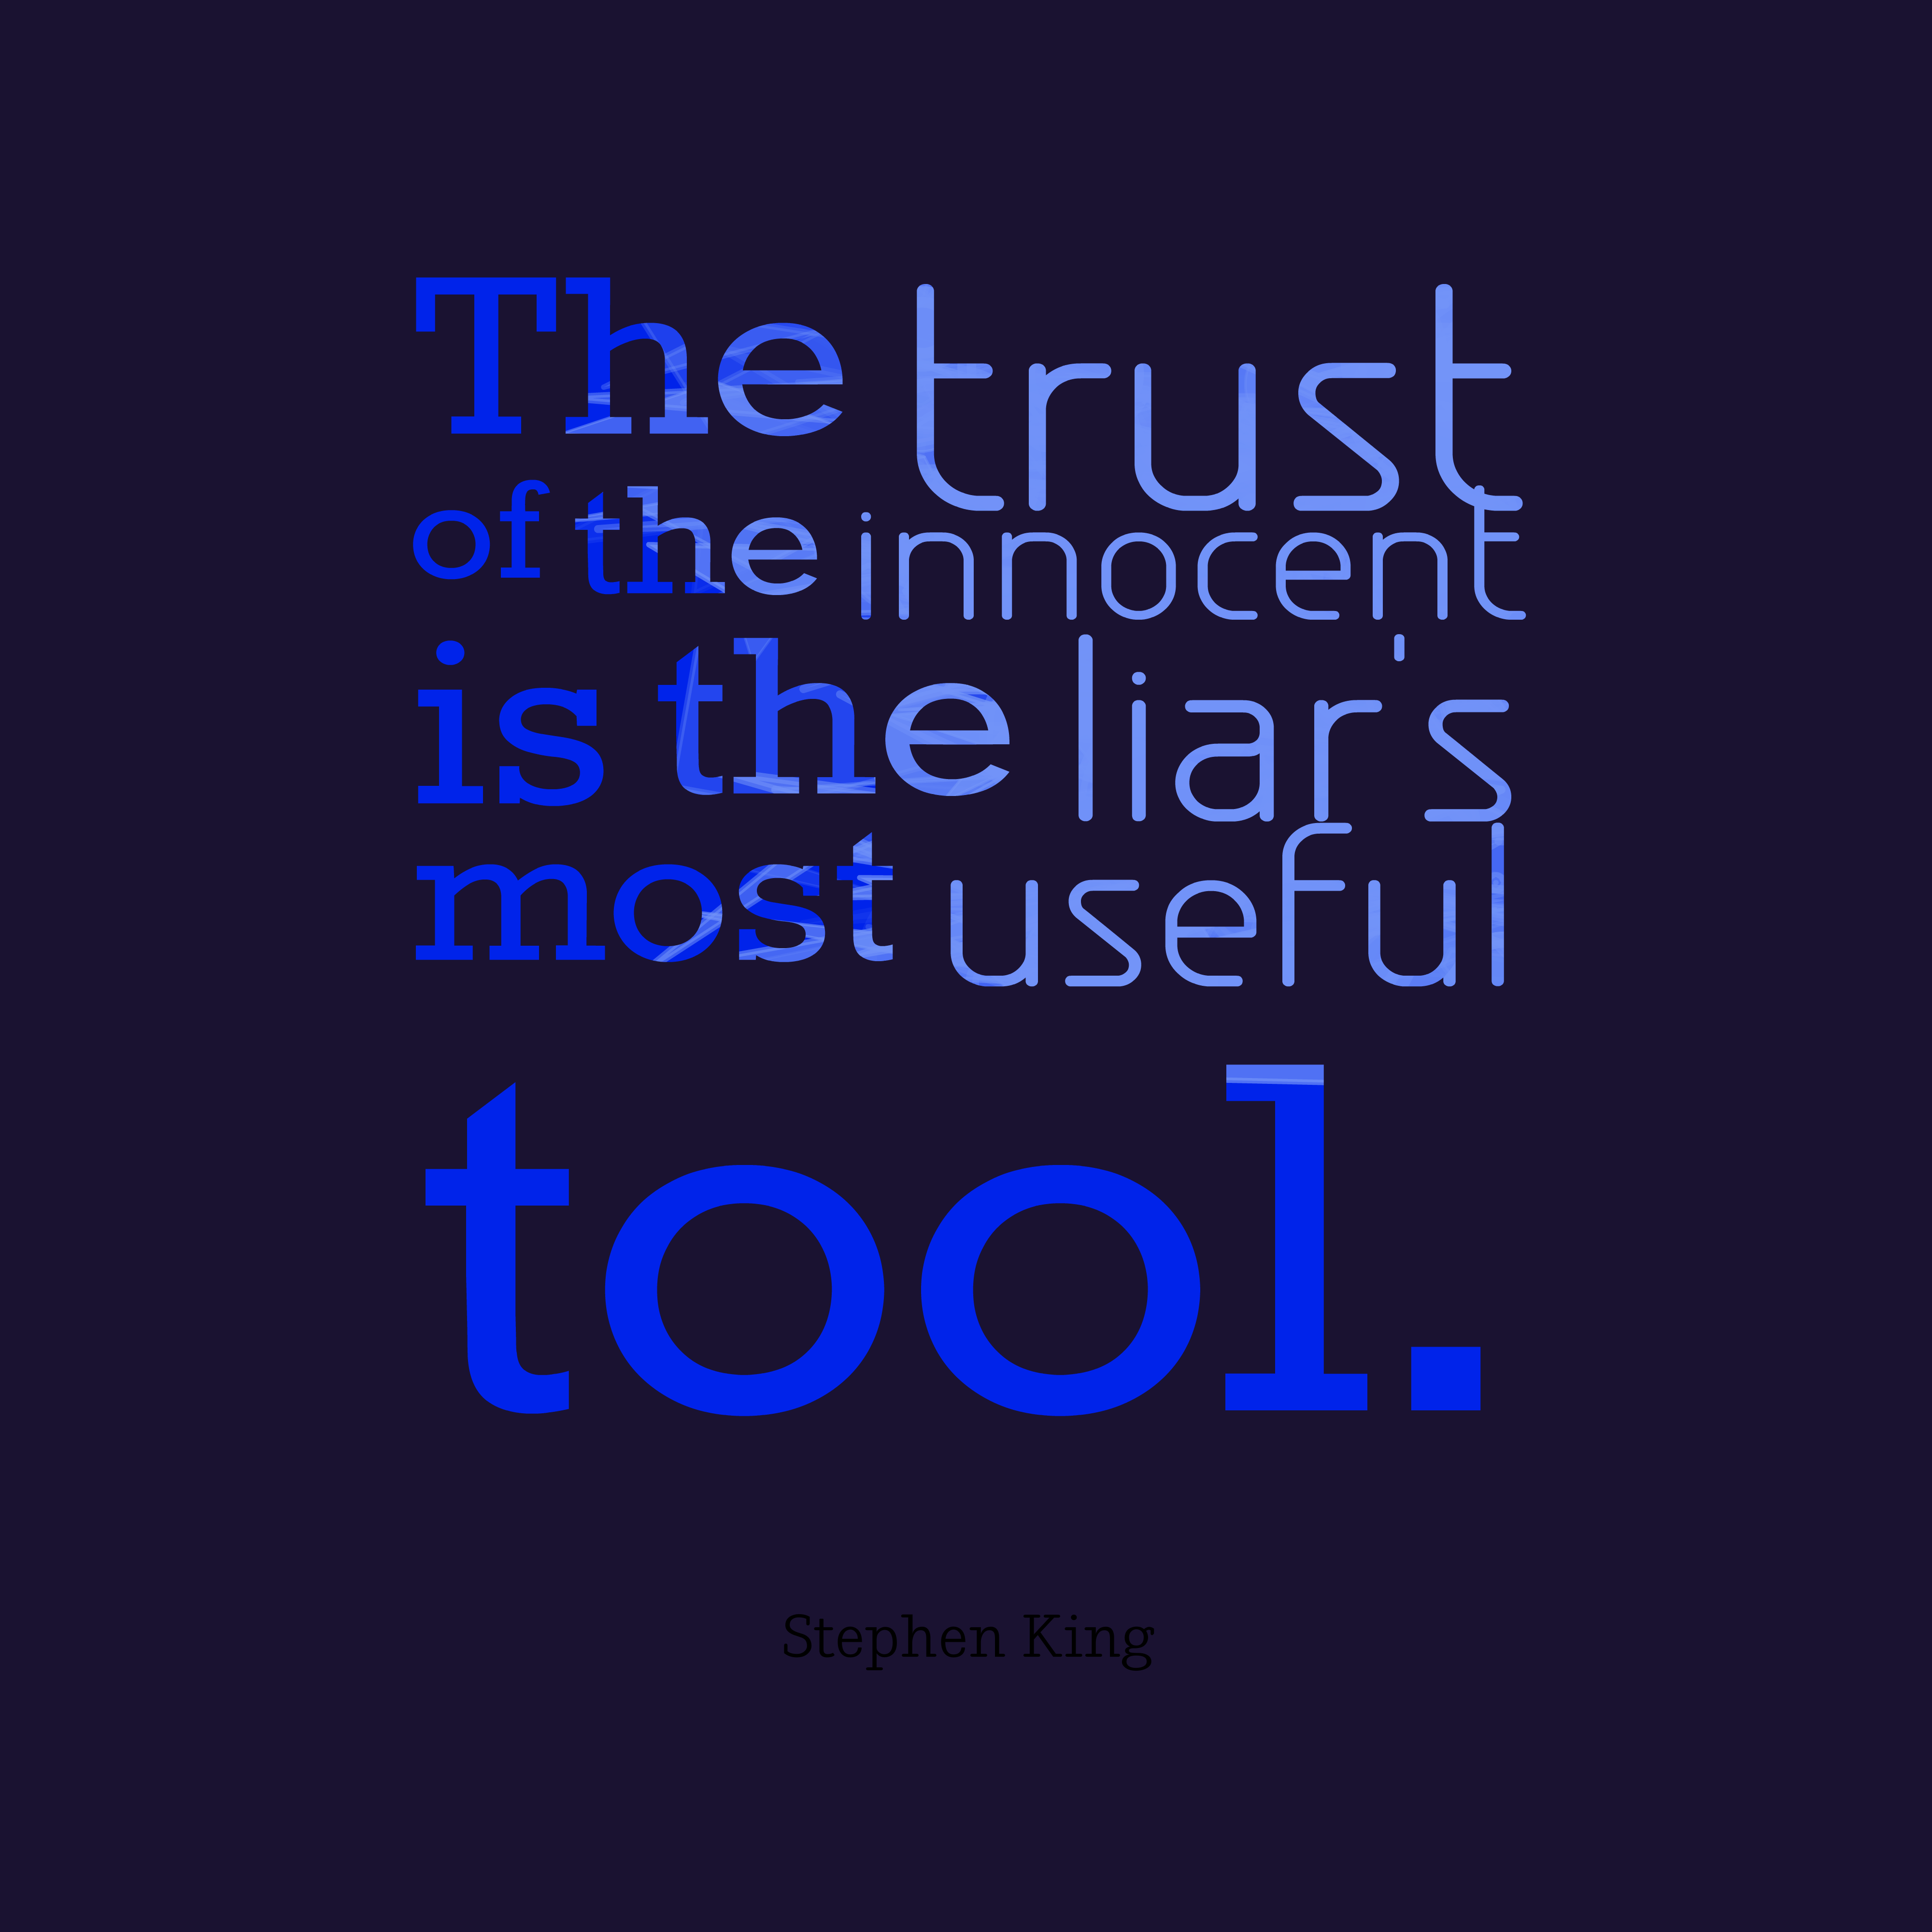 Quotes image of The trust of the innocent is the liar's most useful tool.